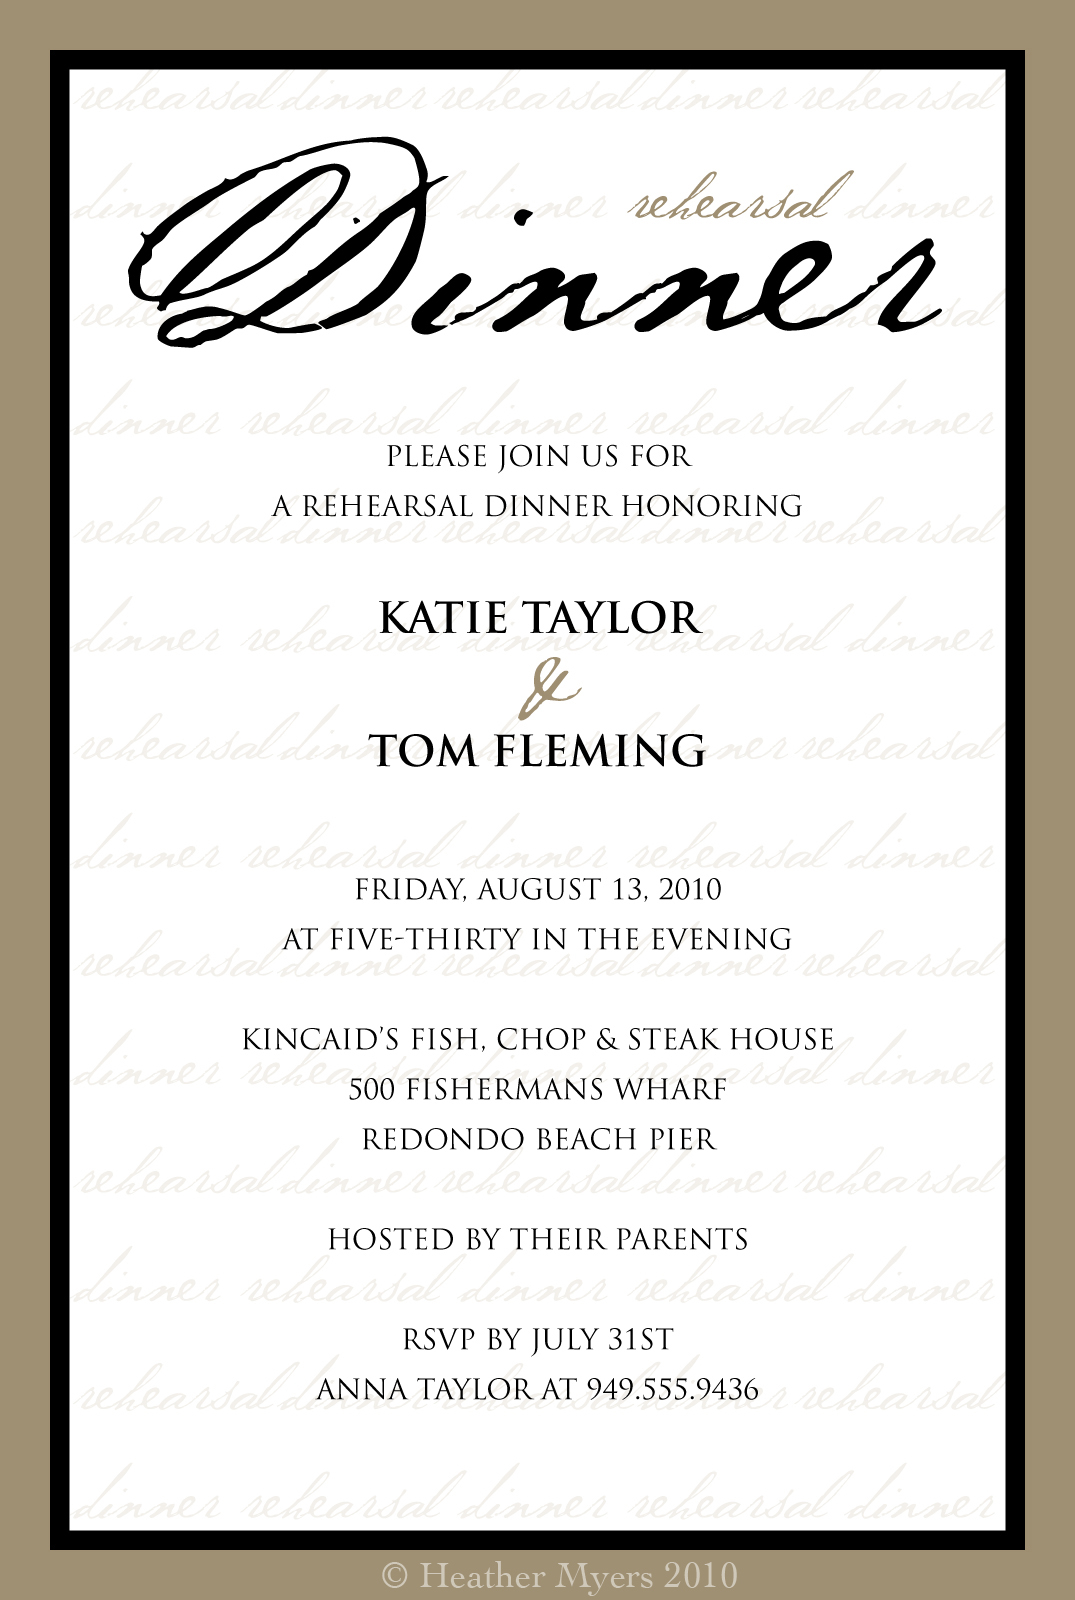 Dinner invitation templates free stopboris